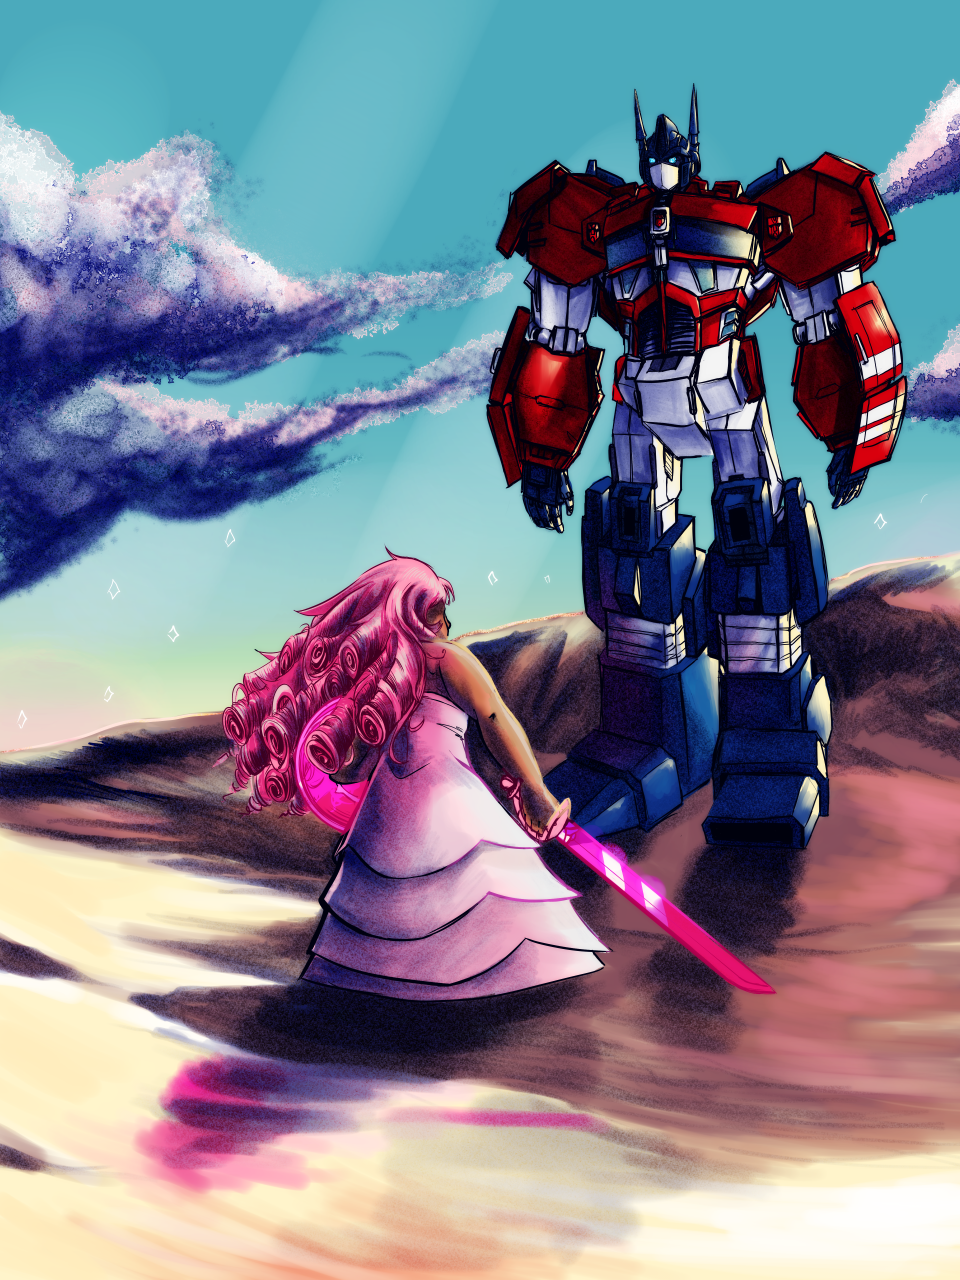 steven universe/transformers crossover commision (and extra sketch, because this took entirely too long) for @katekatharos . I've wanted to do a crossover between these shows forever, so hope you...